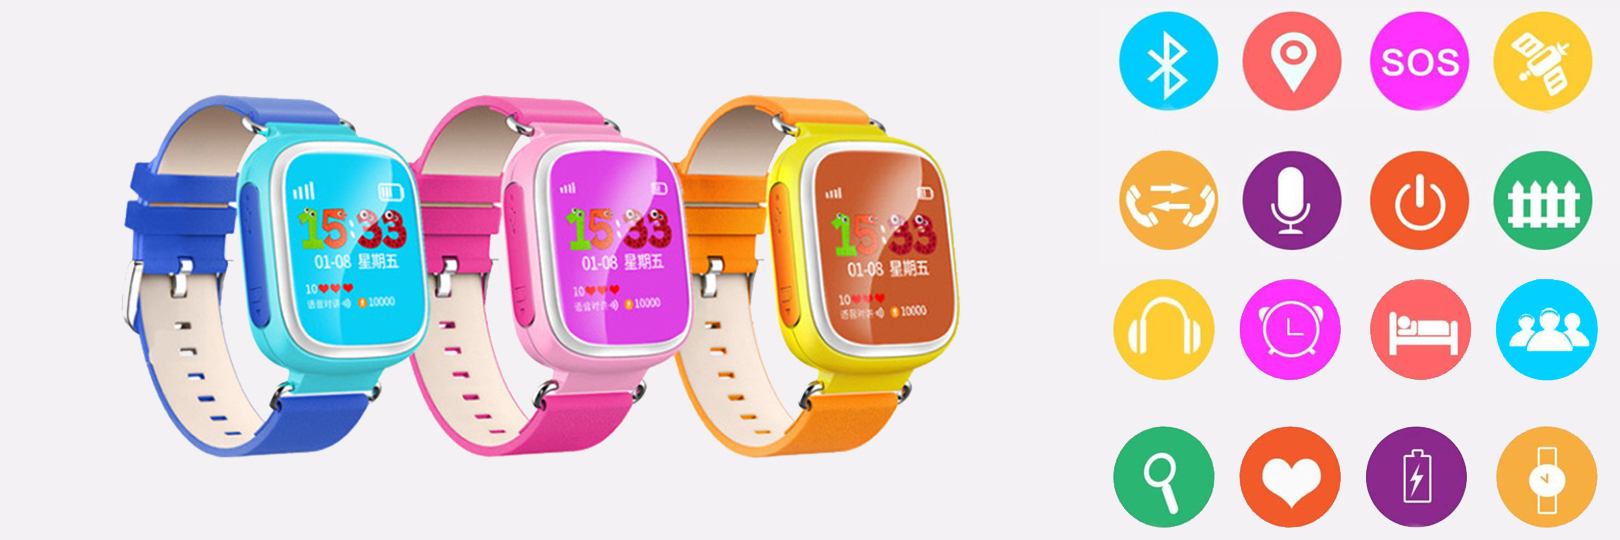 Smart Watch for kids with GPS tracker